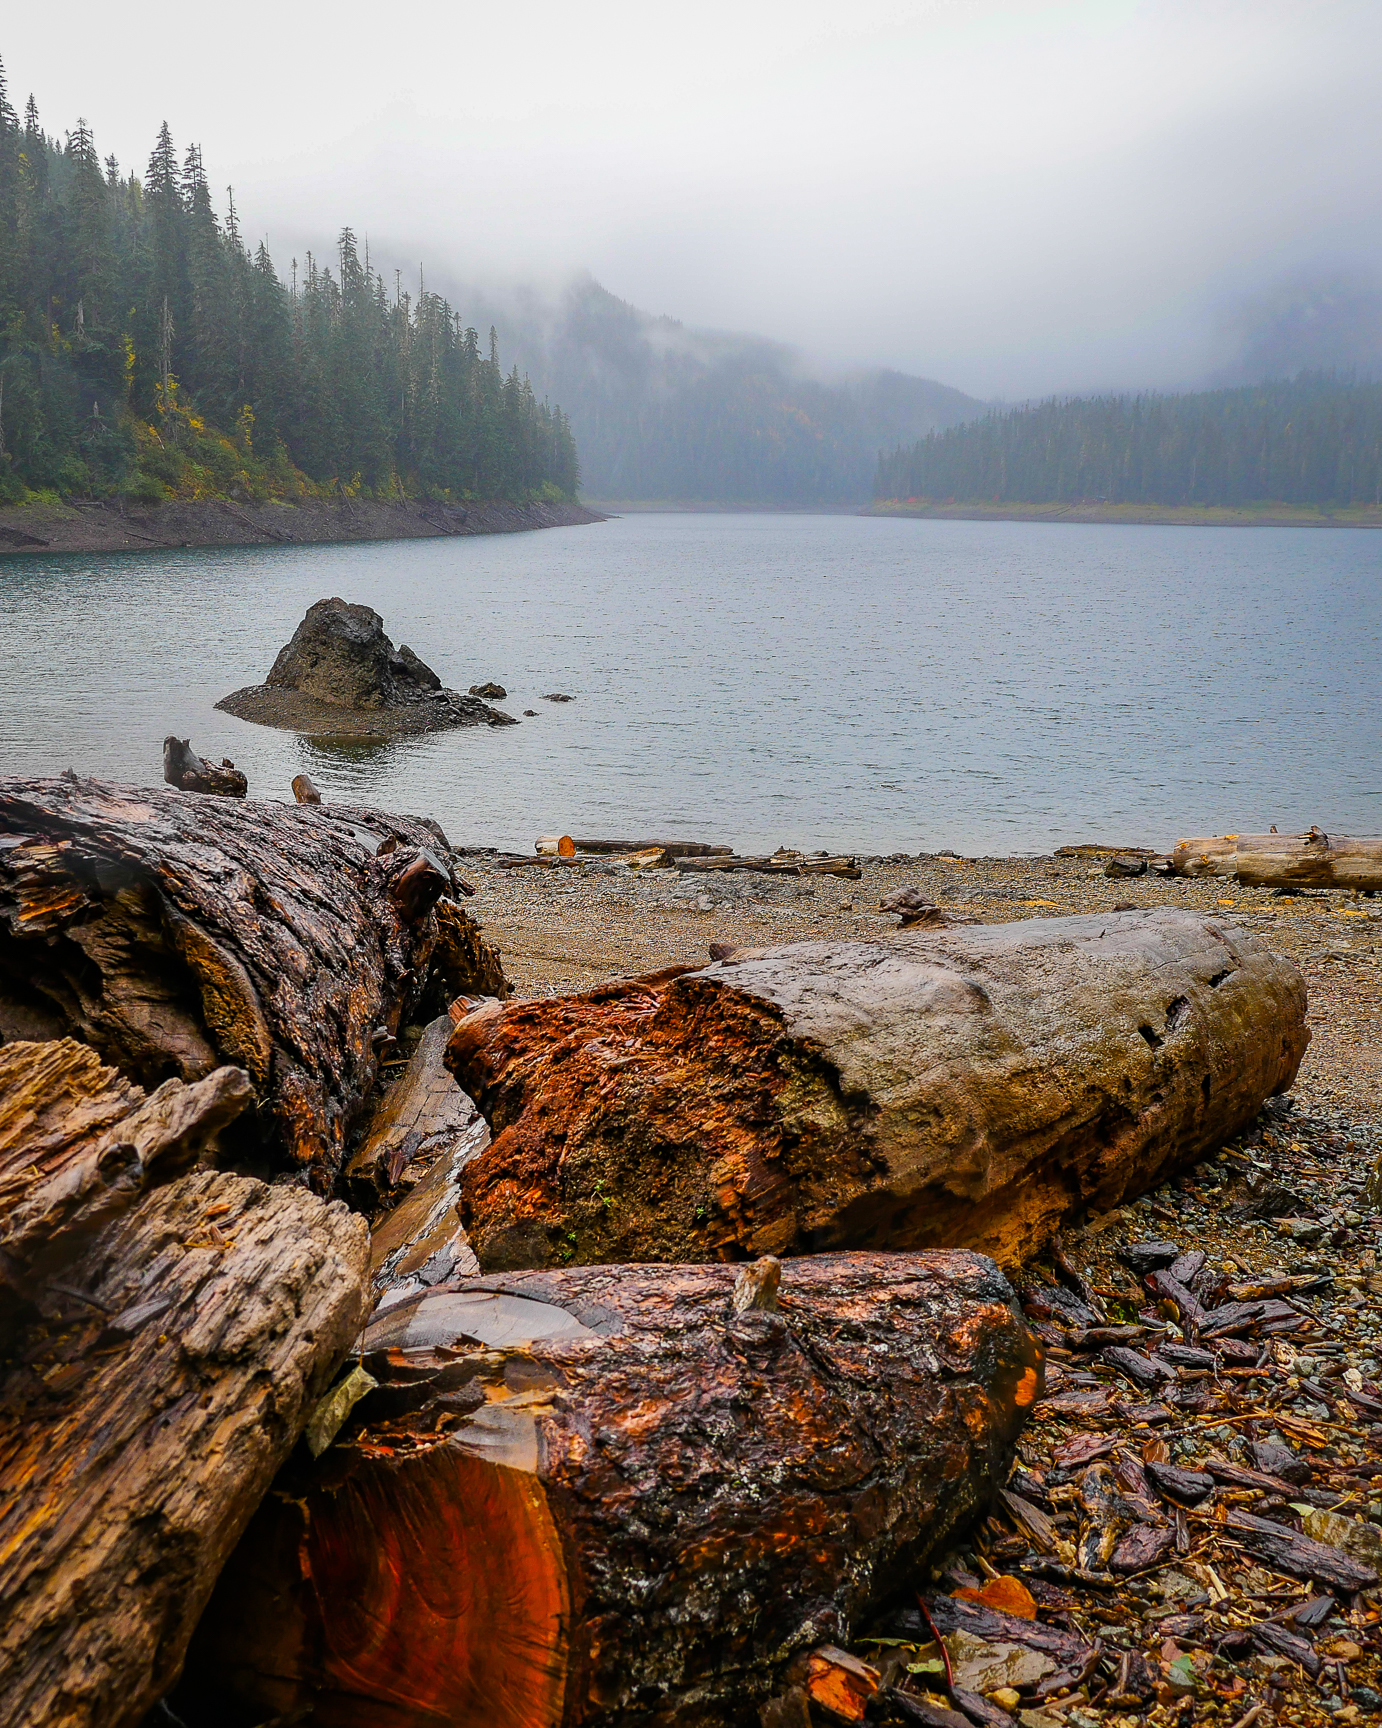 Lake in the Cascade Mountains